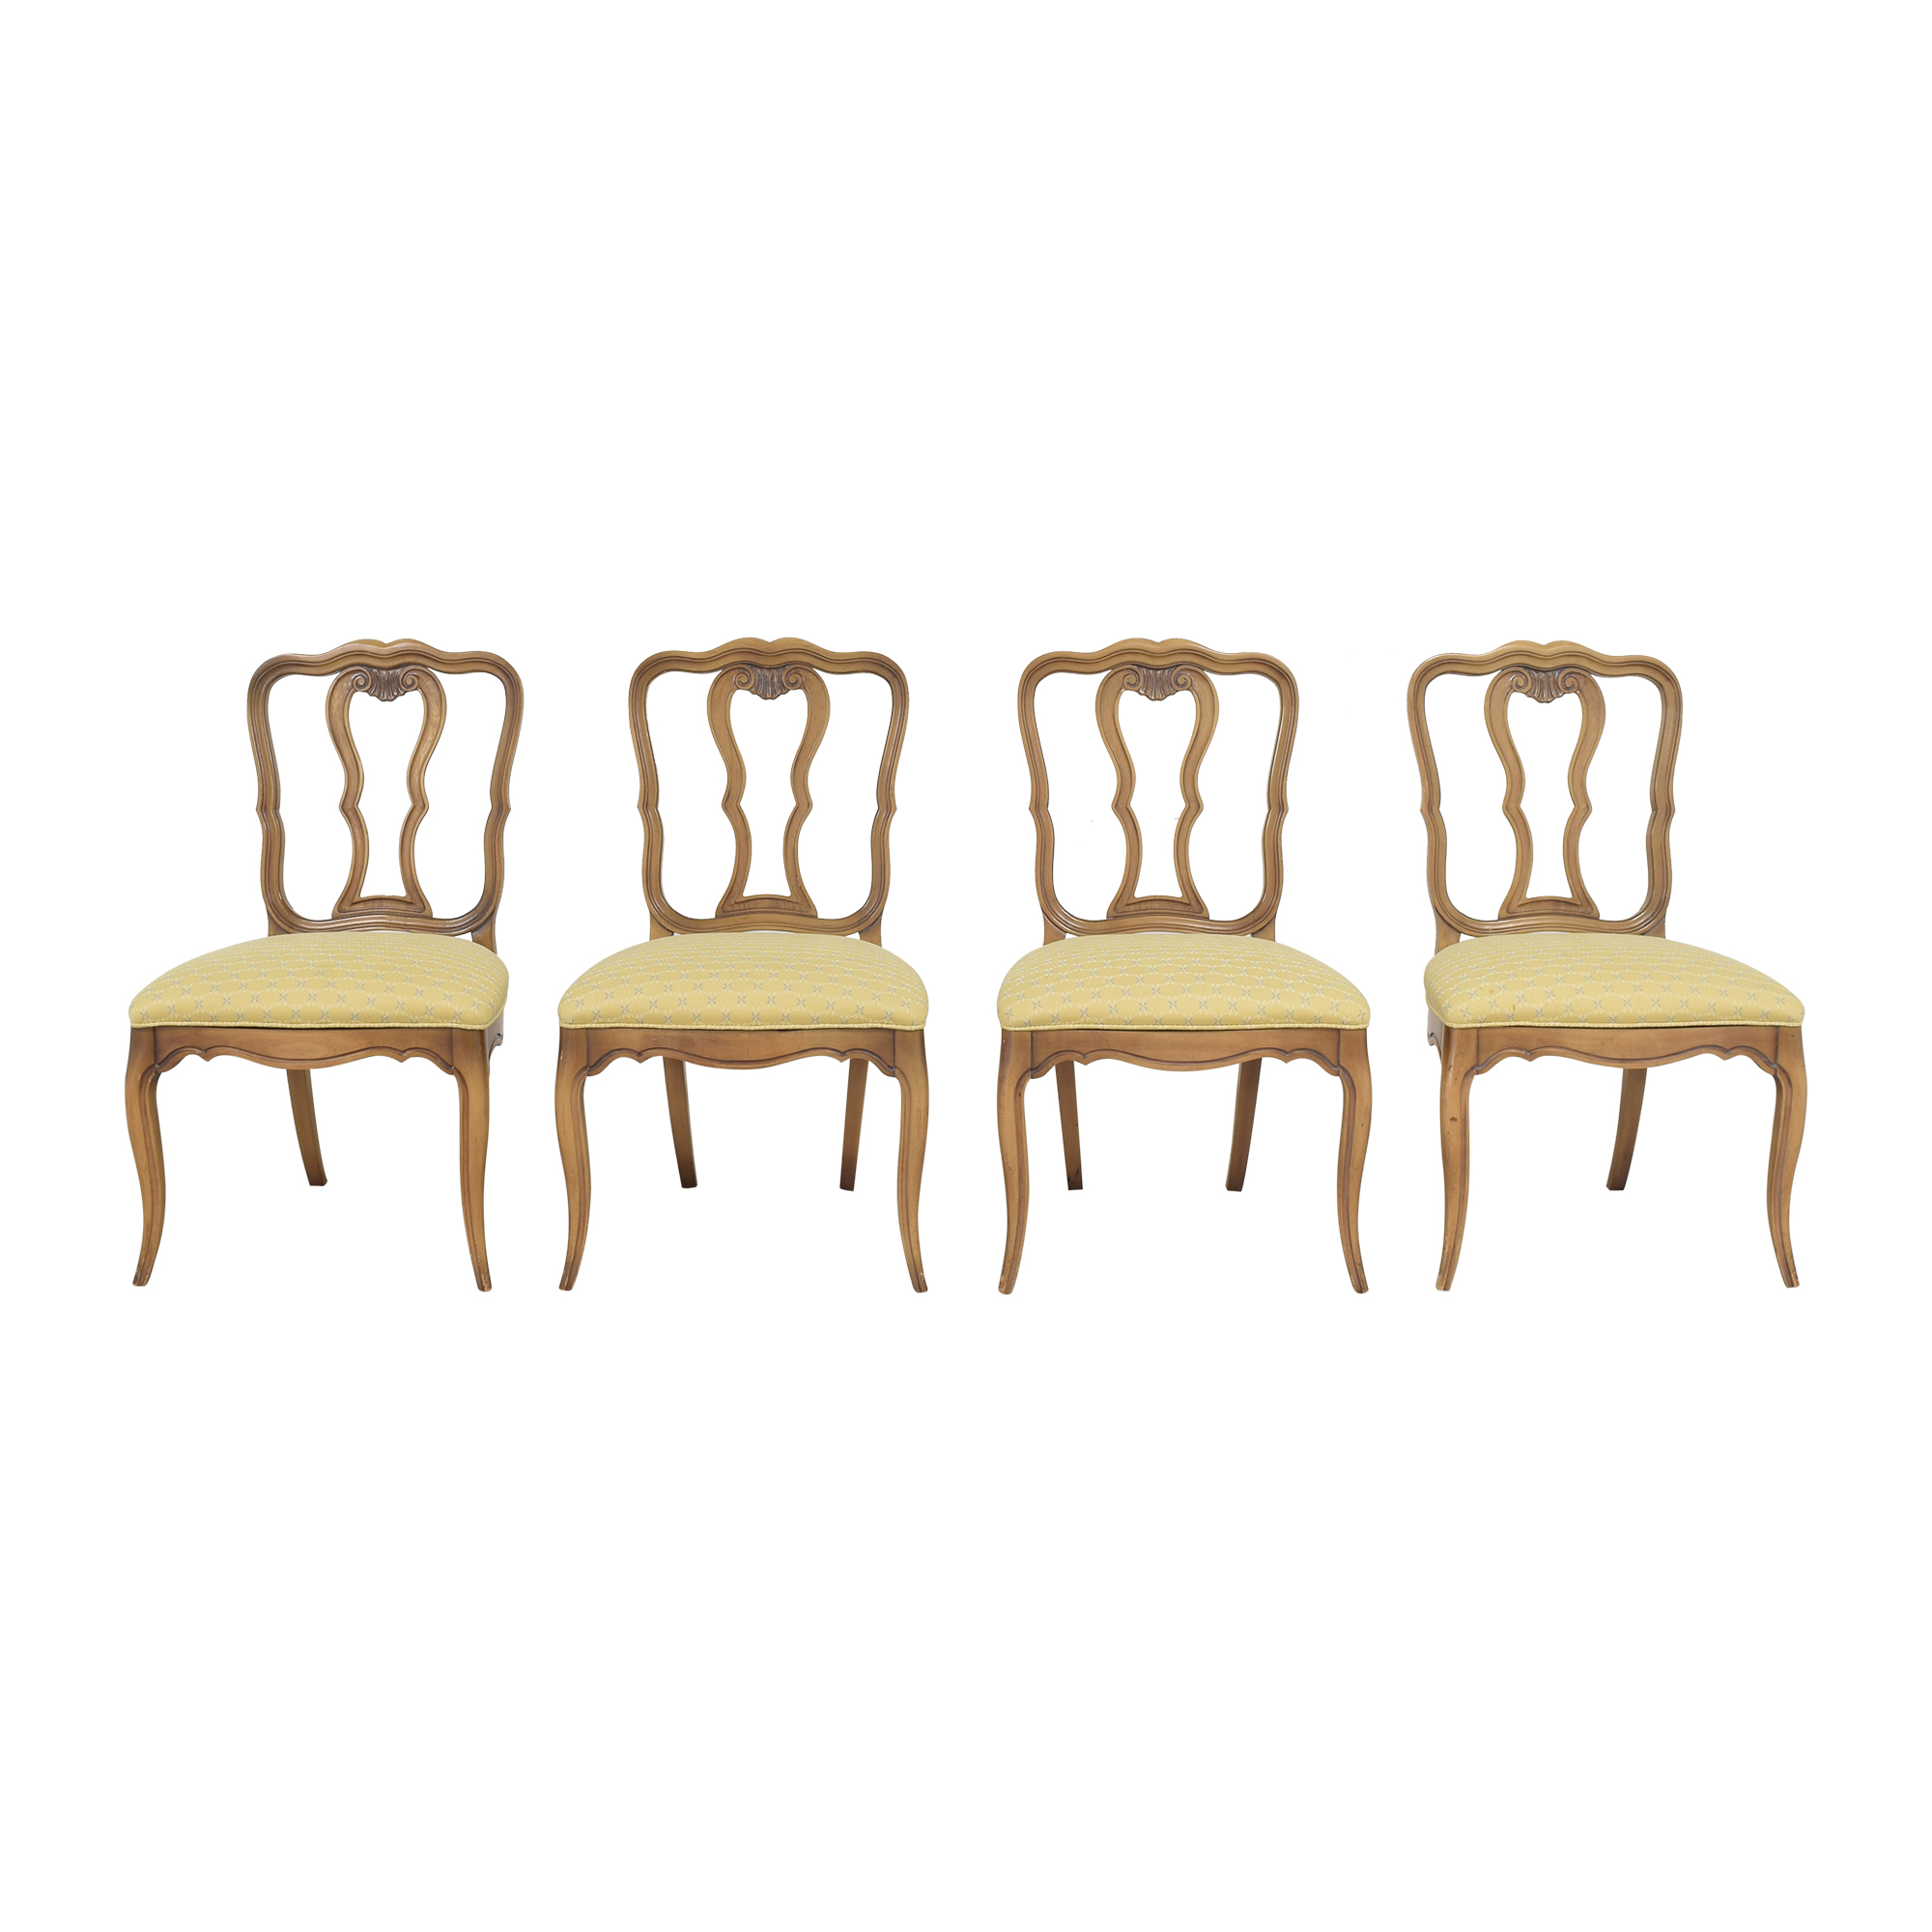 White Fine Furniture White Fine Furniture French Provincial-Style Dining Chairs brown & yellow